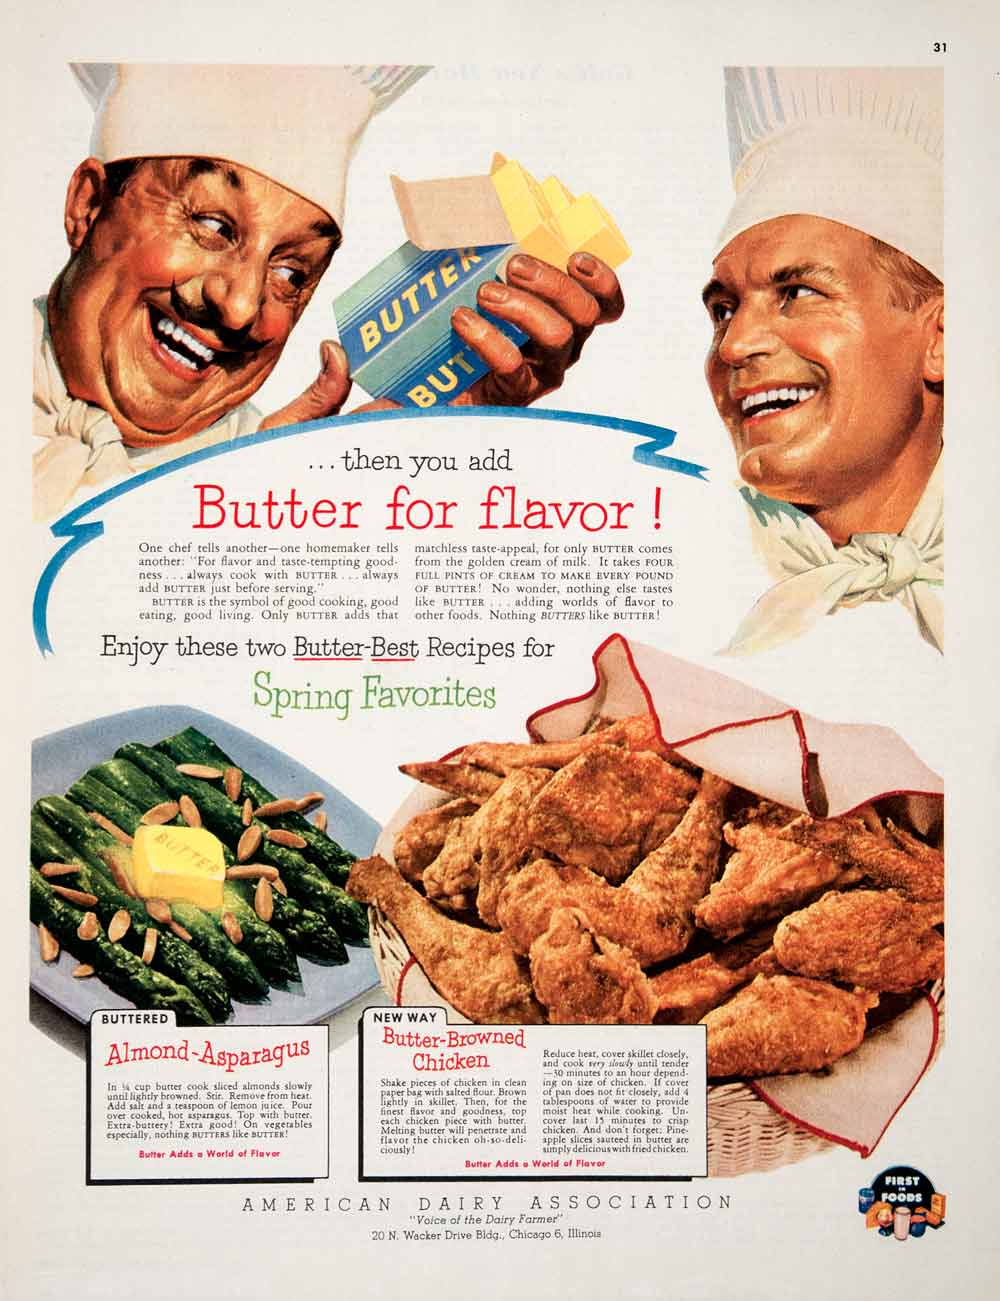 1952 Ad American Dairy Association Butter Almond Asparagus Browned Chicken COLL3